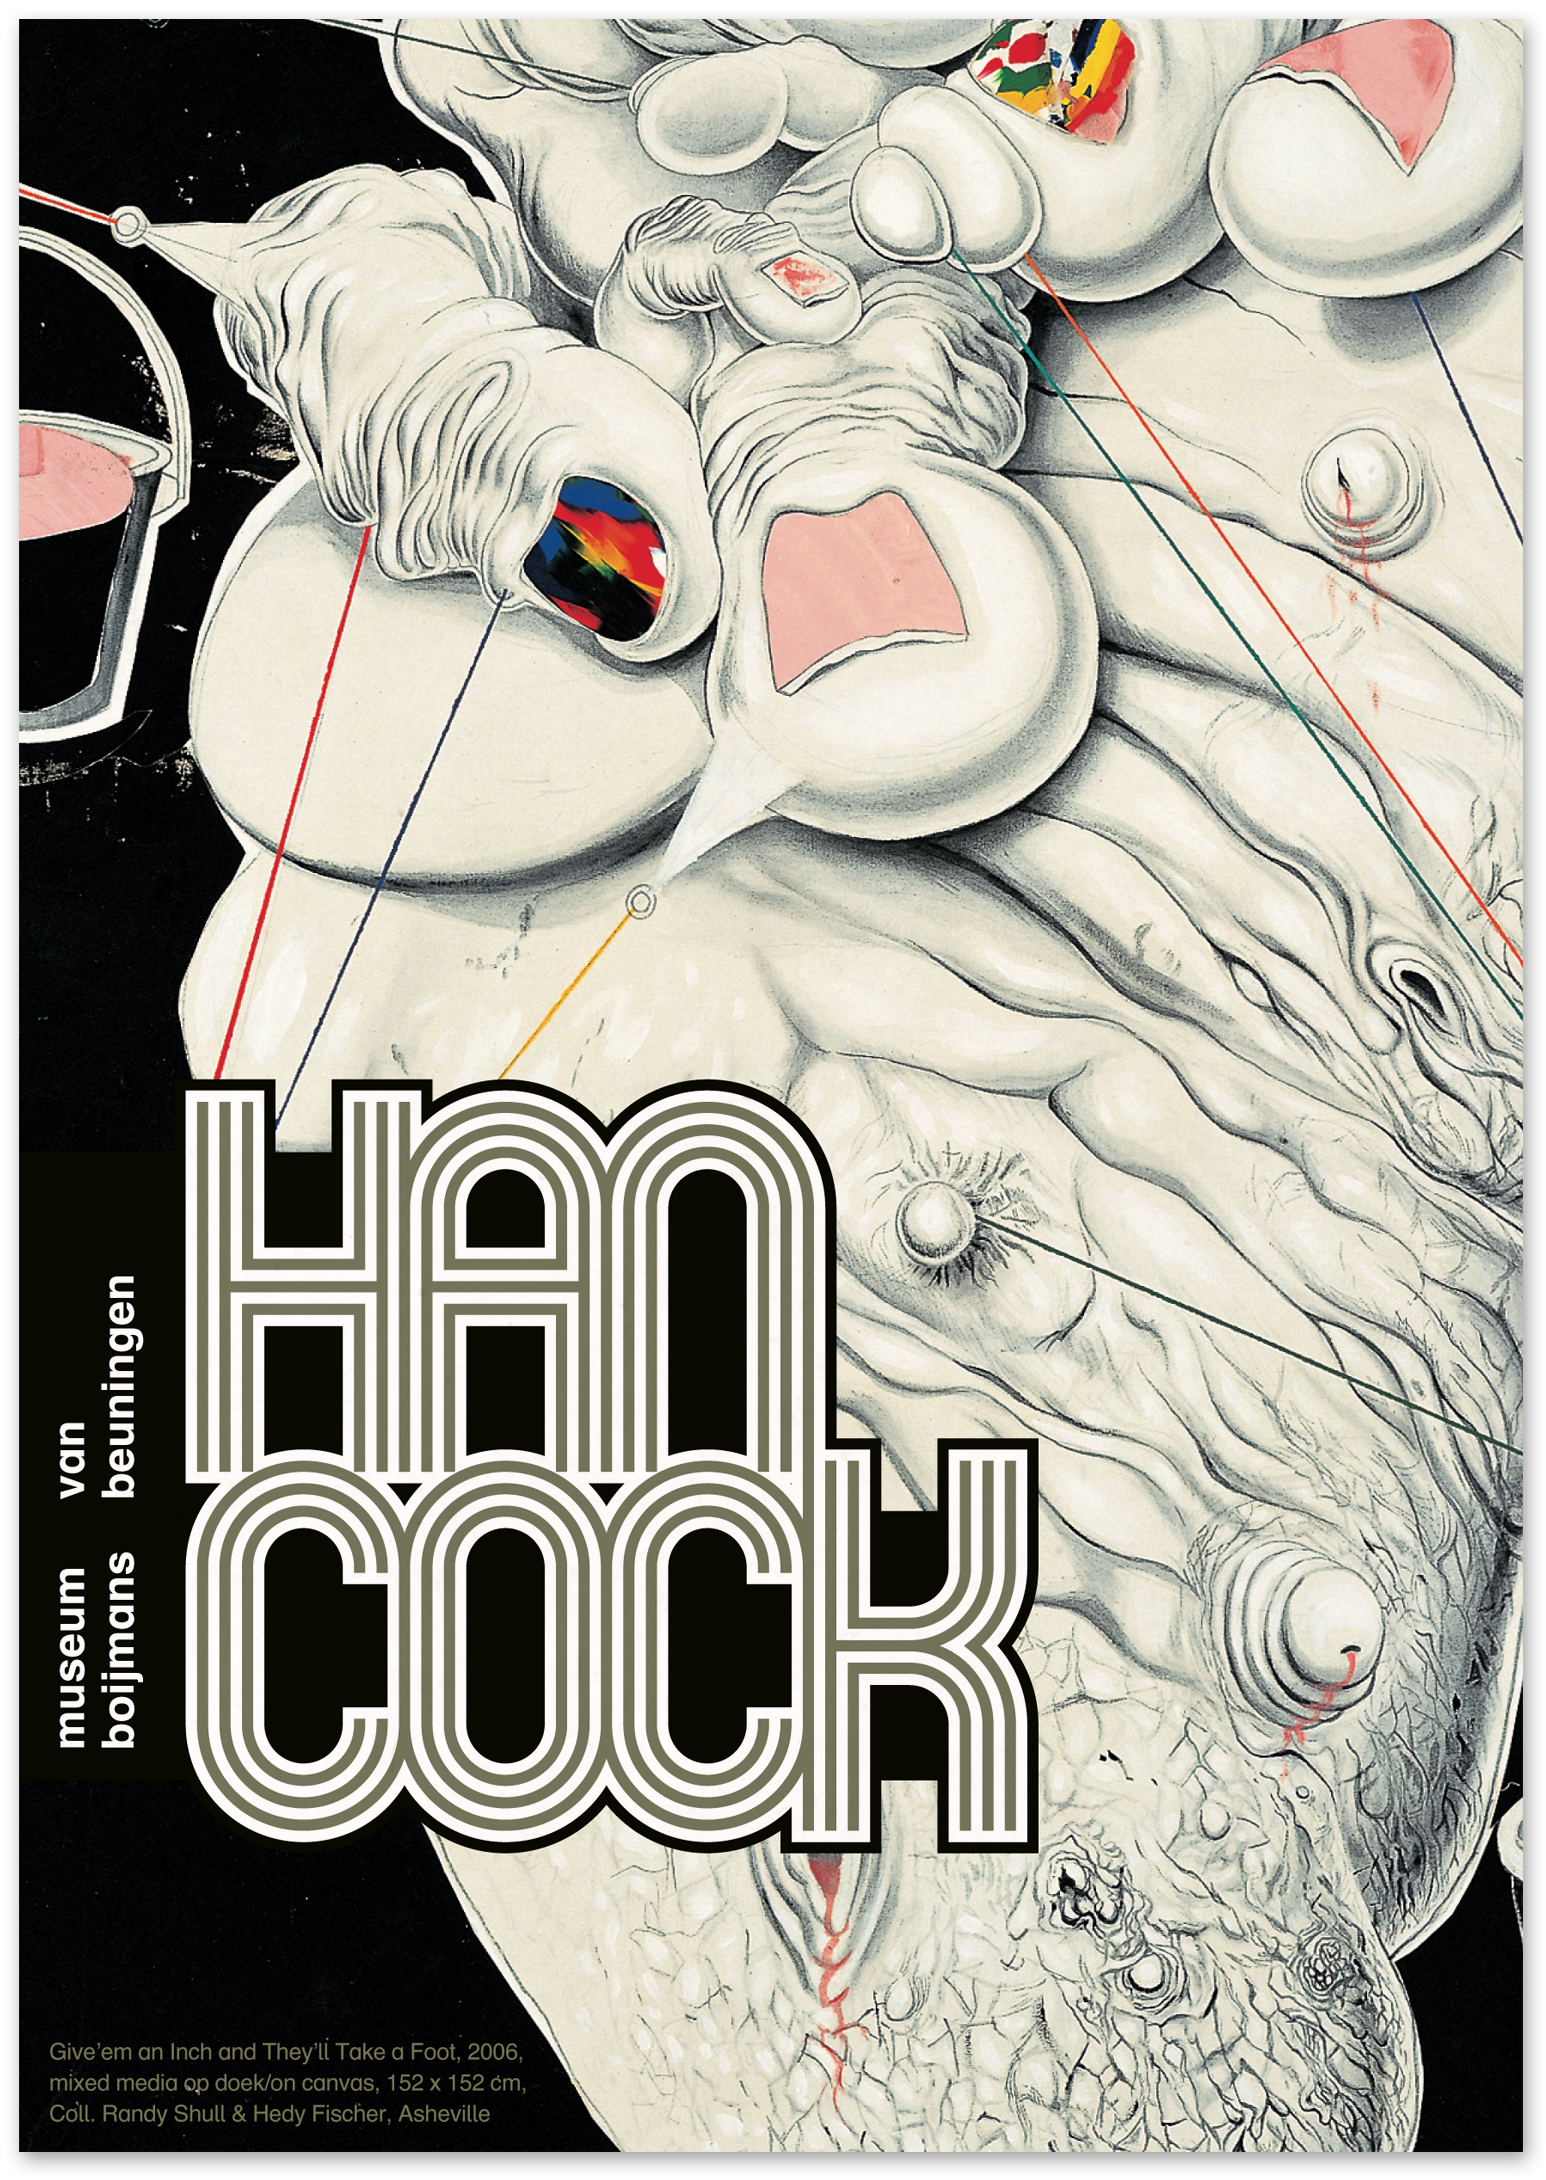 studio_colorado-boijmans_flyer-hancock-voor